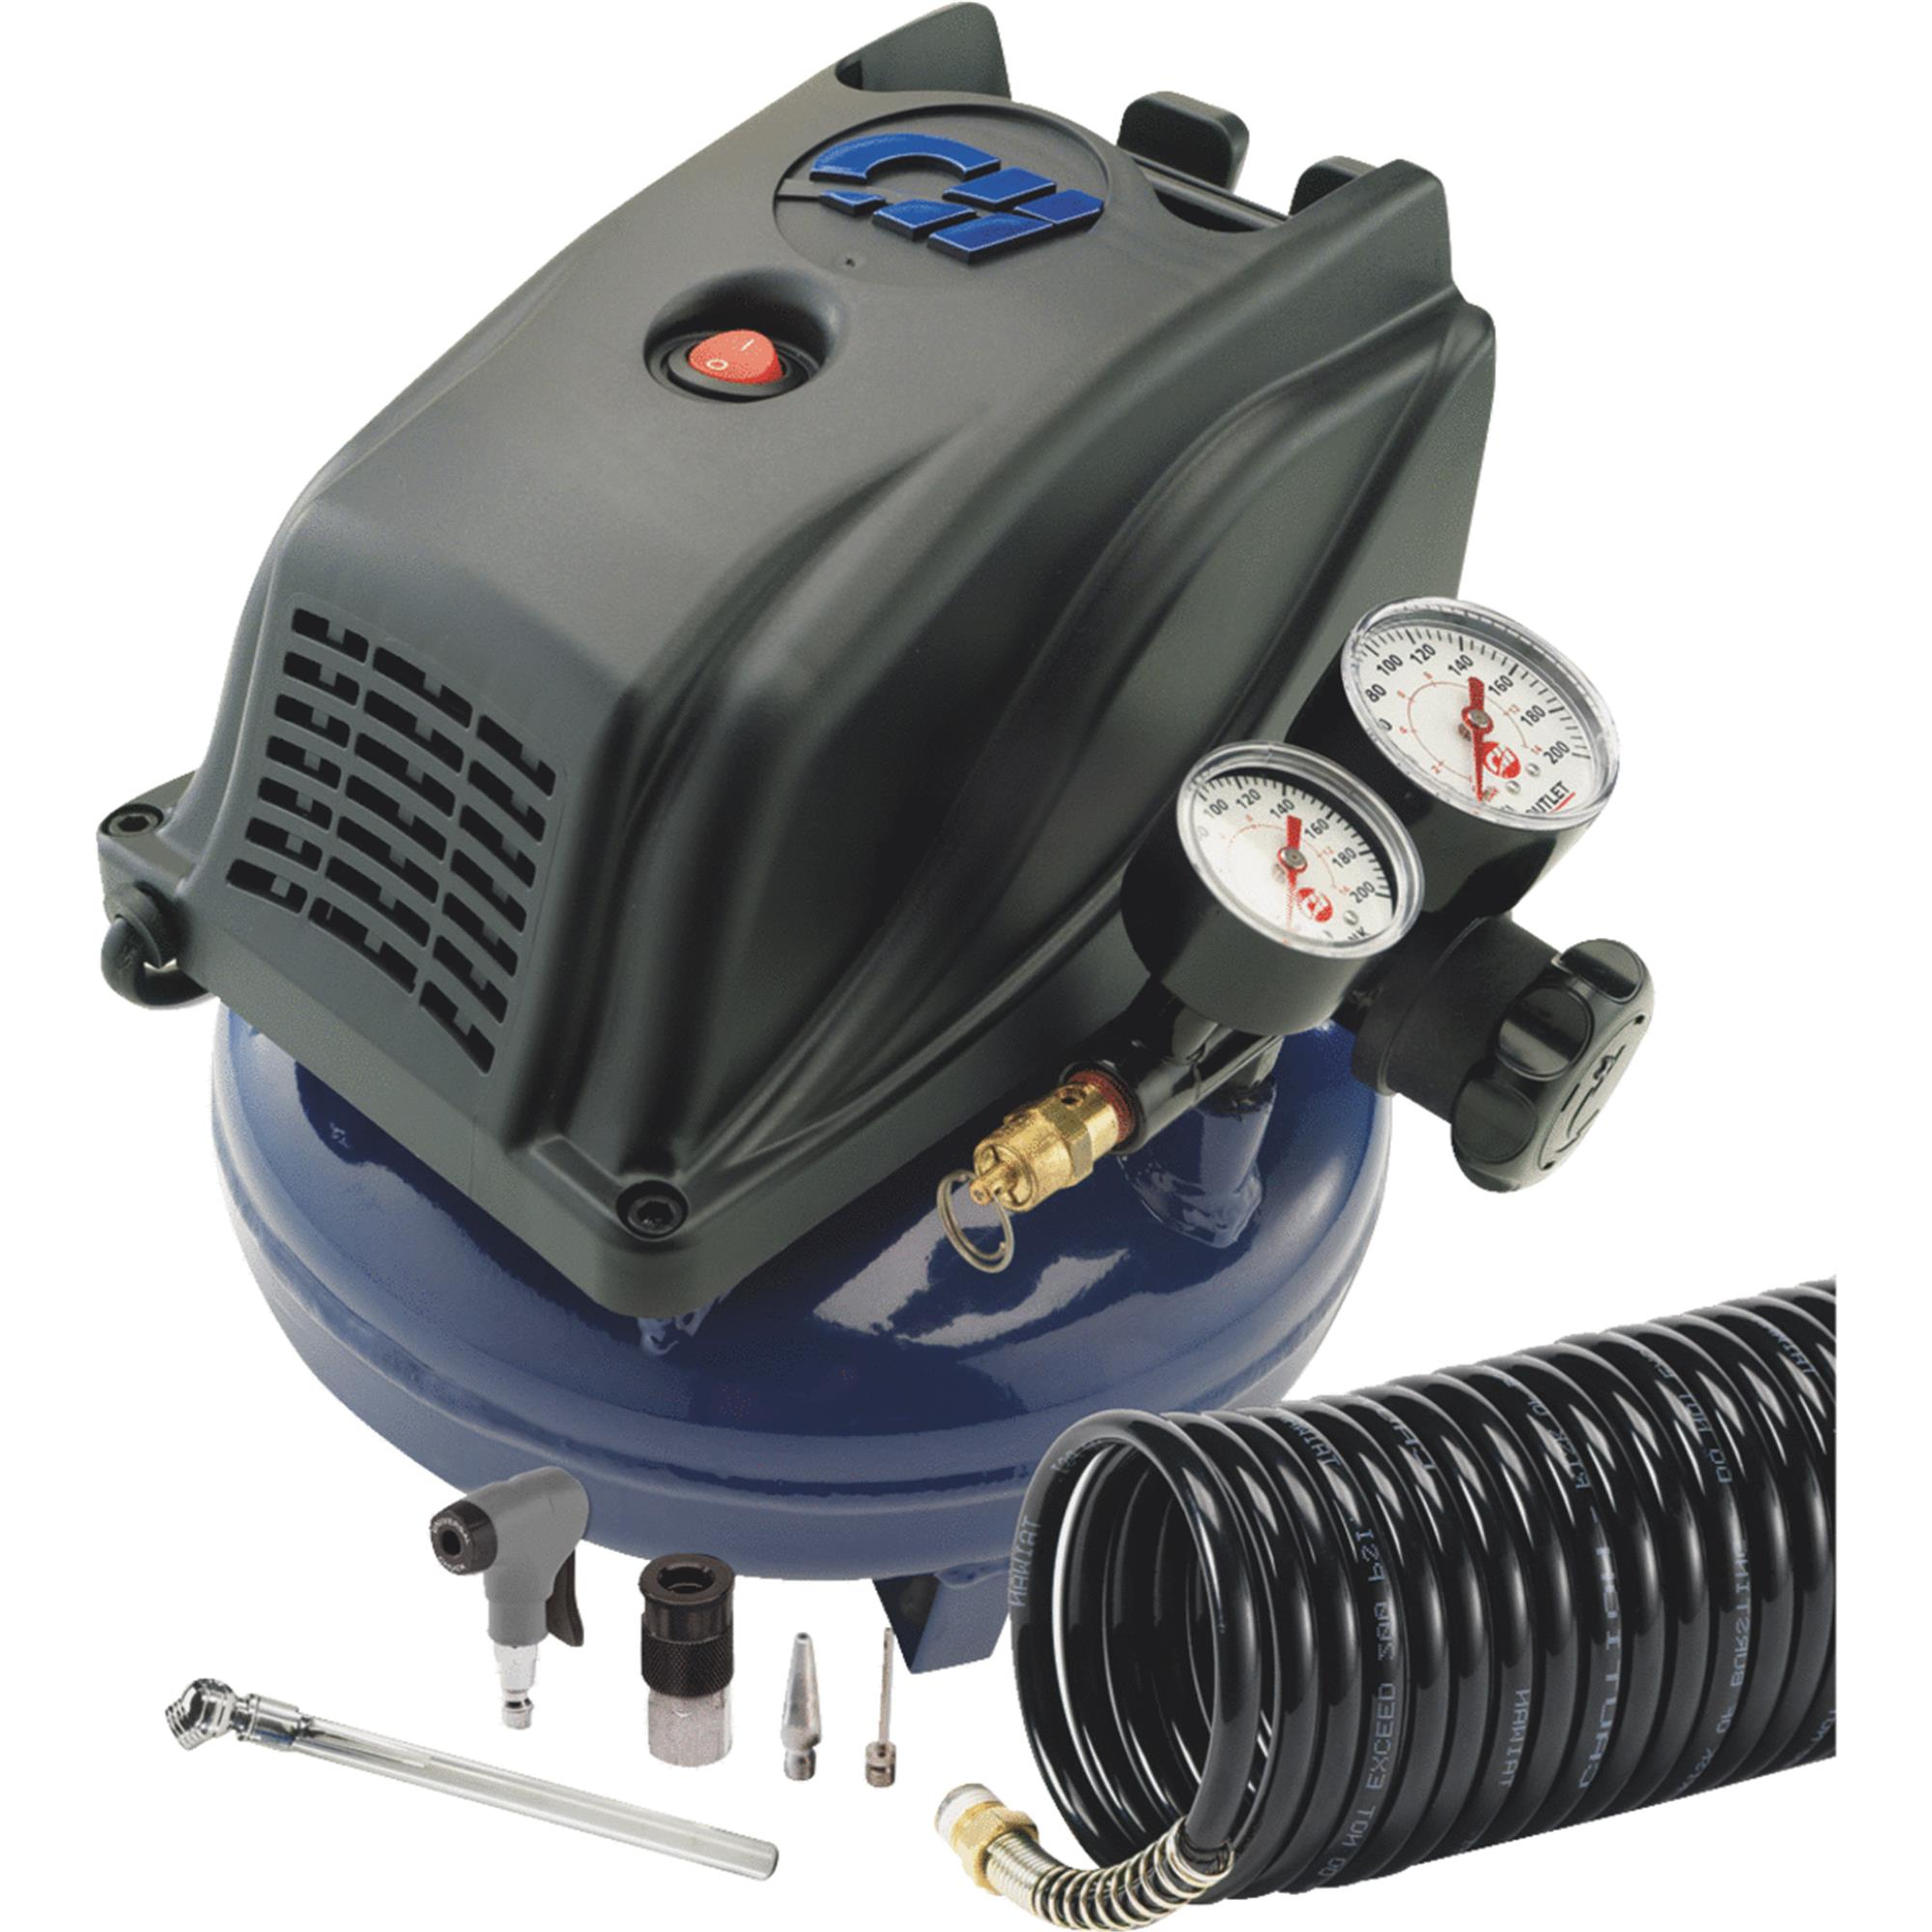 Campbell Hausfeld 1 Gallon Pancake Air Compressor Kit